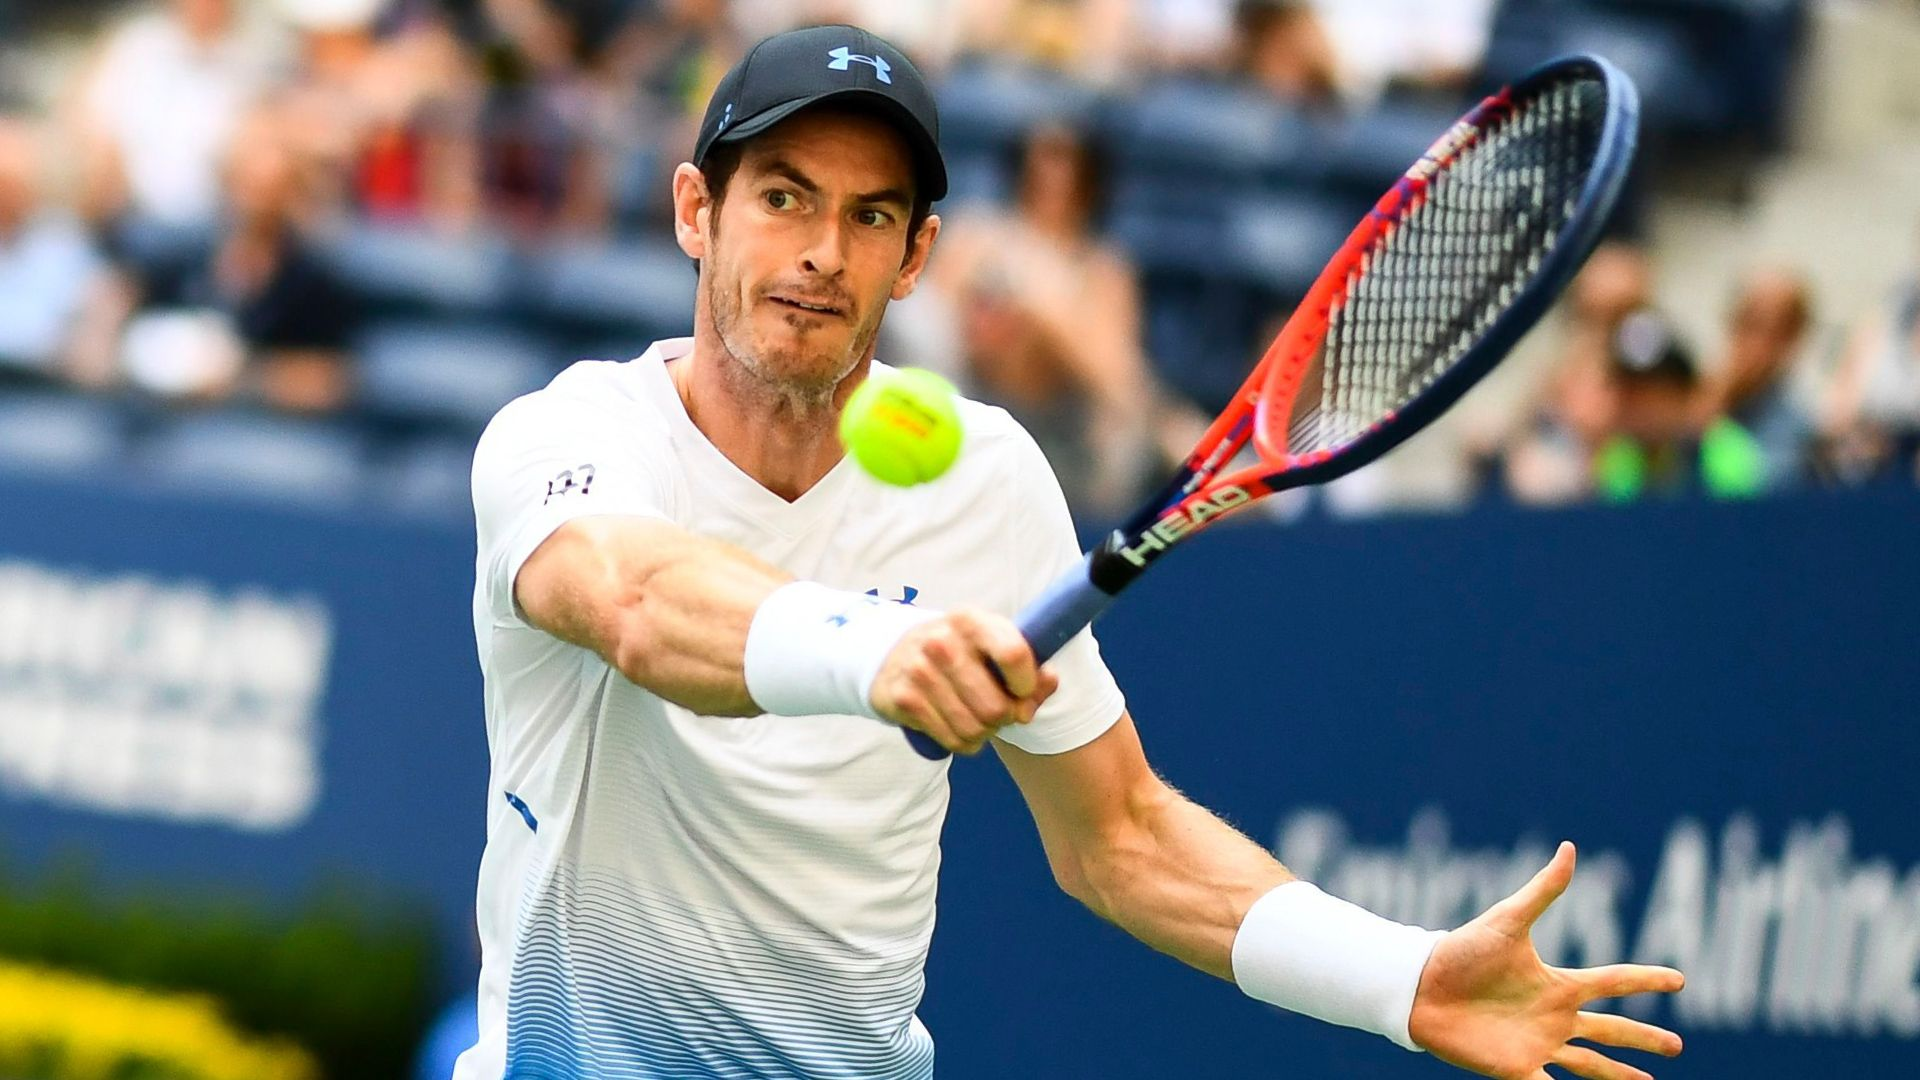 Mandatory Credit: Photo by Javier Garcia/BPI/REX/Shutterstock (9826937aw)Andy Murray during his second round matchUS Open Tennis Championships, Day 3, USTA National Tennis Center, Flushing Meadows, New York, USA - 29 Aug 2018.